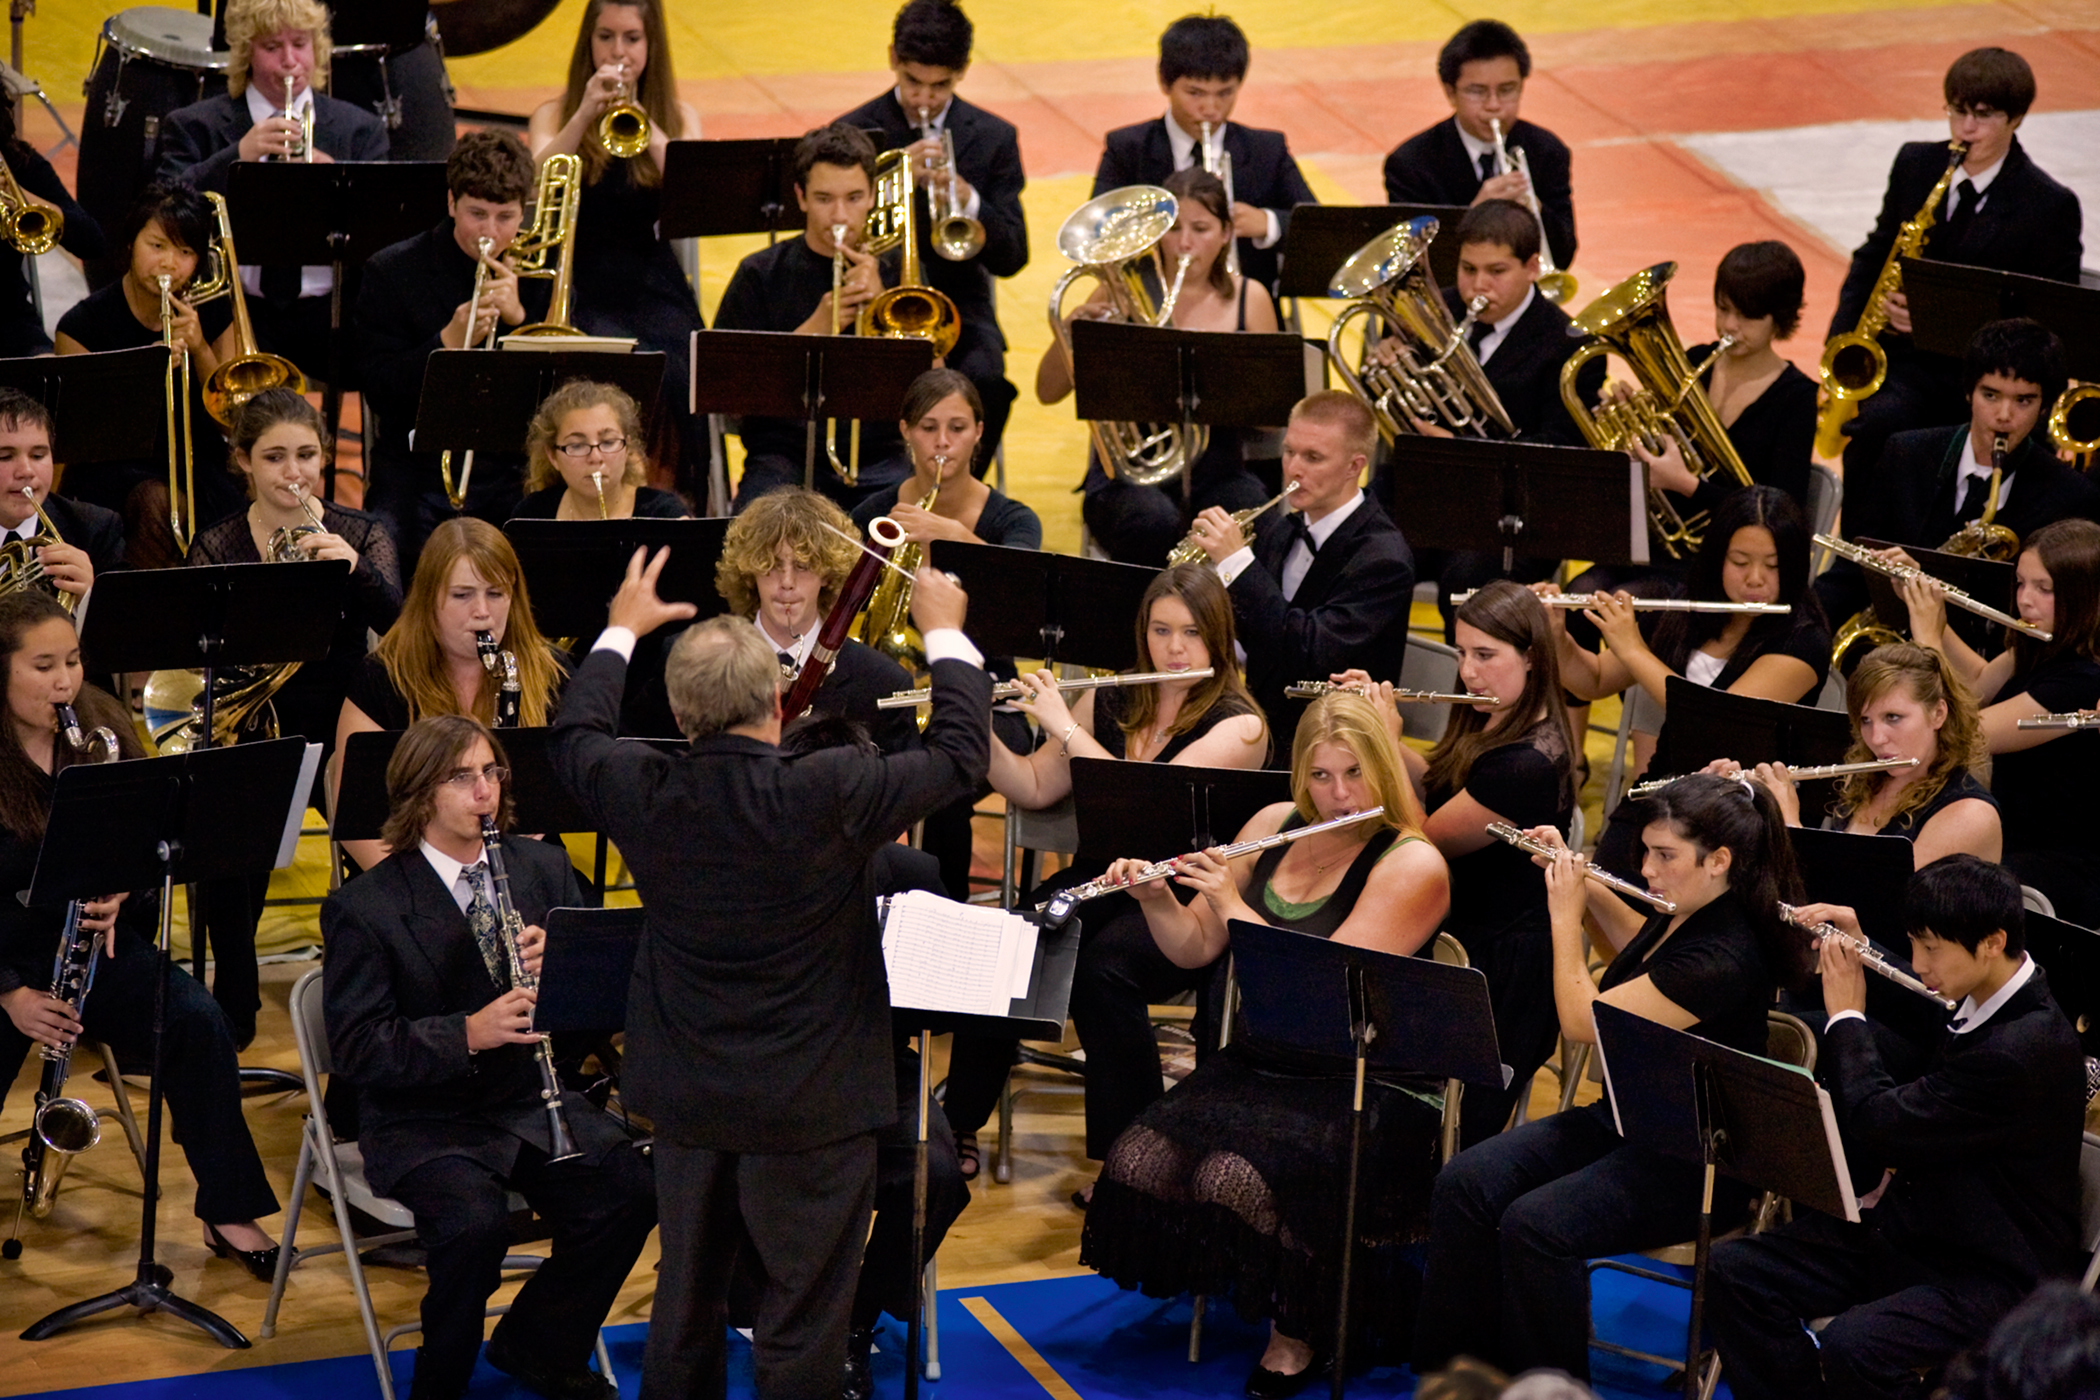 Many colleges look for applicants with a passion for a particular activity, like these high school musicians.